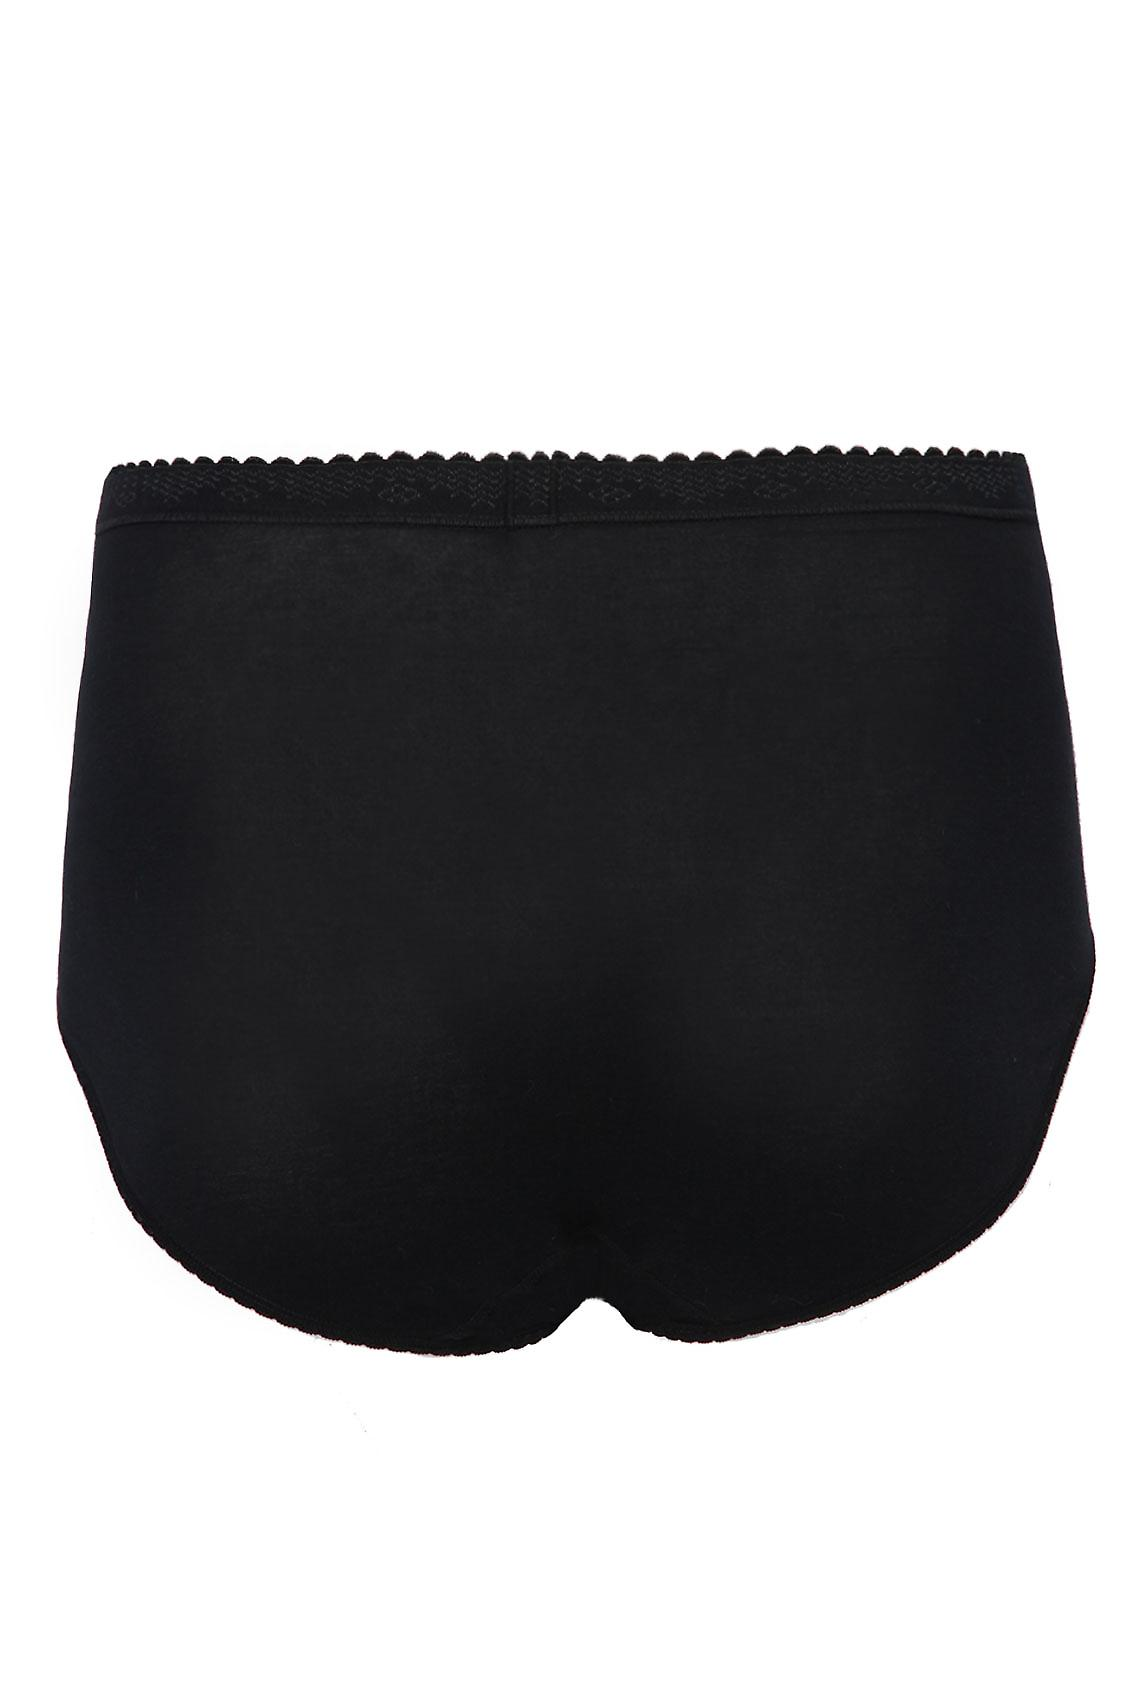 SLOGGI 2 PACK Black Control Maxi Briefs